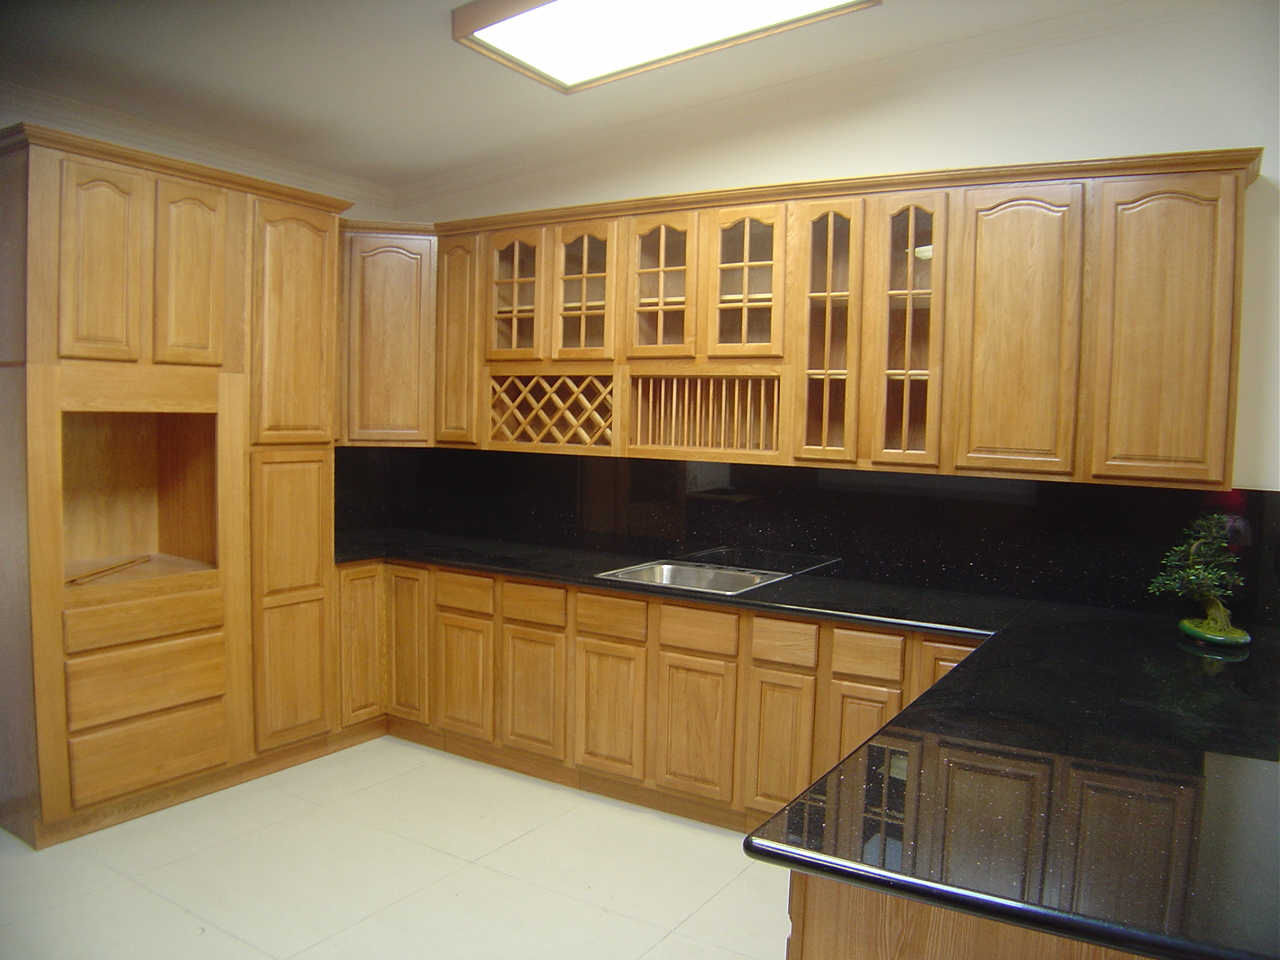 Kitchen cabinets storage solutions photo - 2